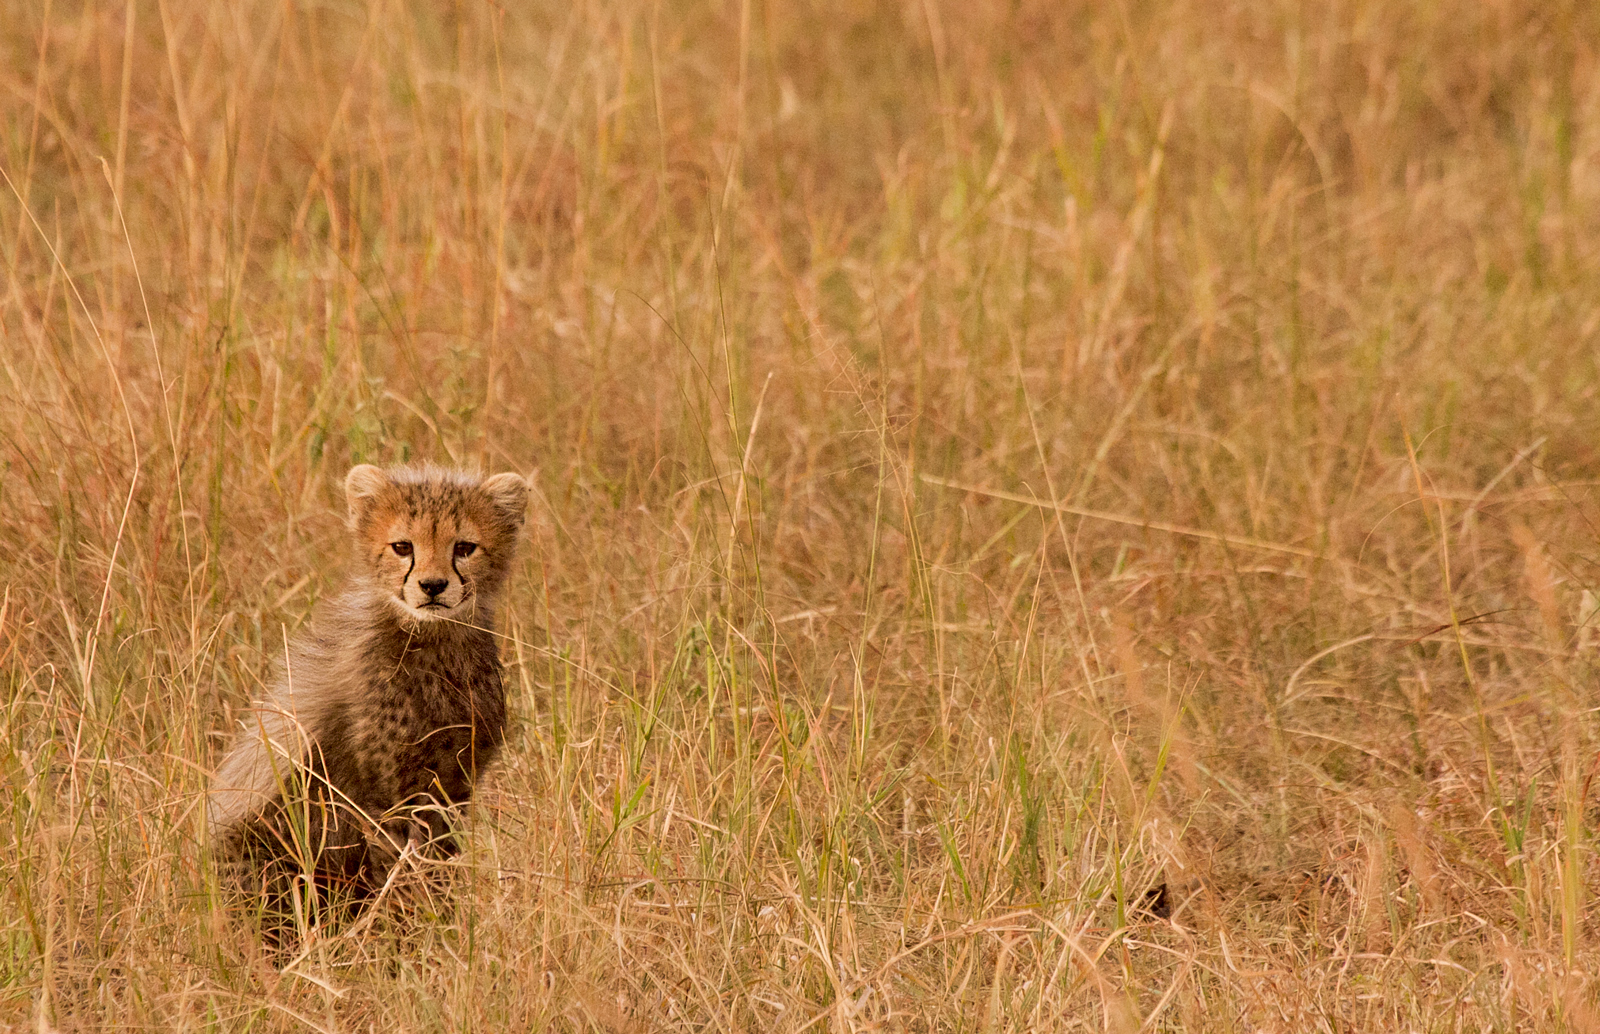 cheetah-cub-in-the-grass-cristian-boix